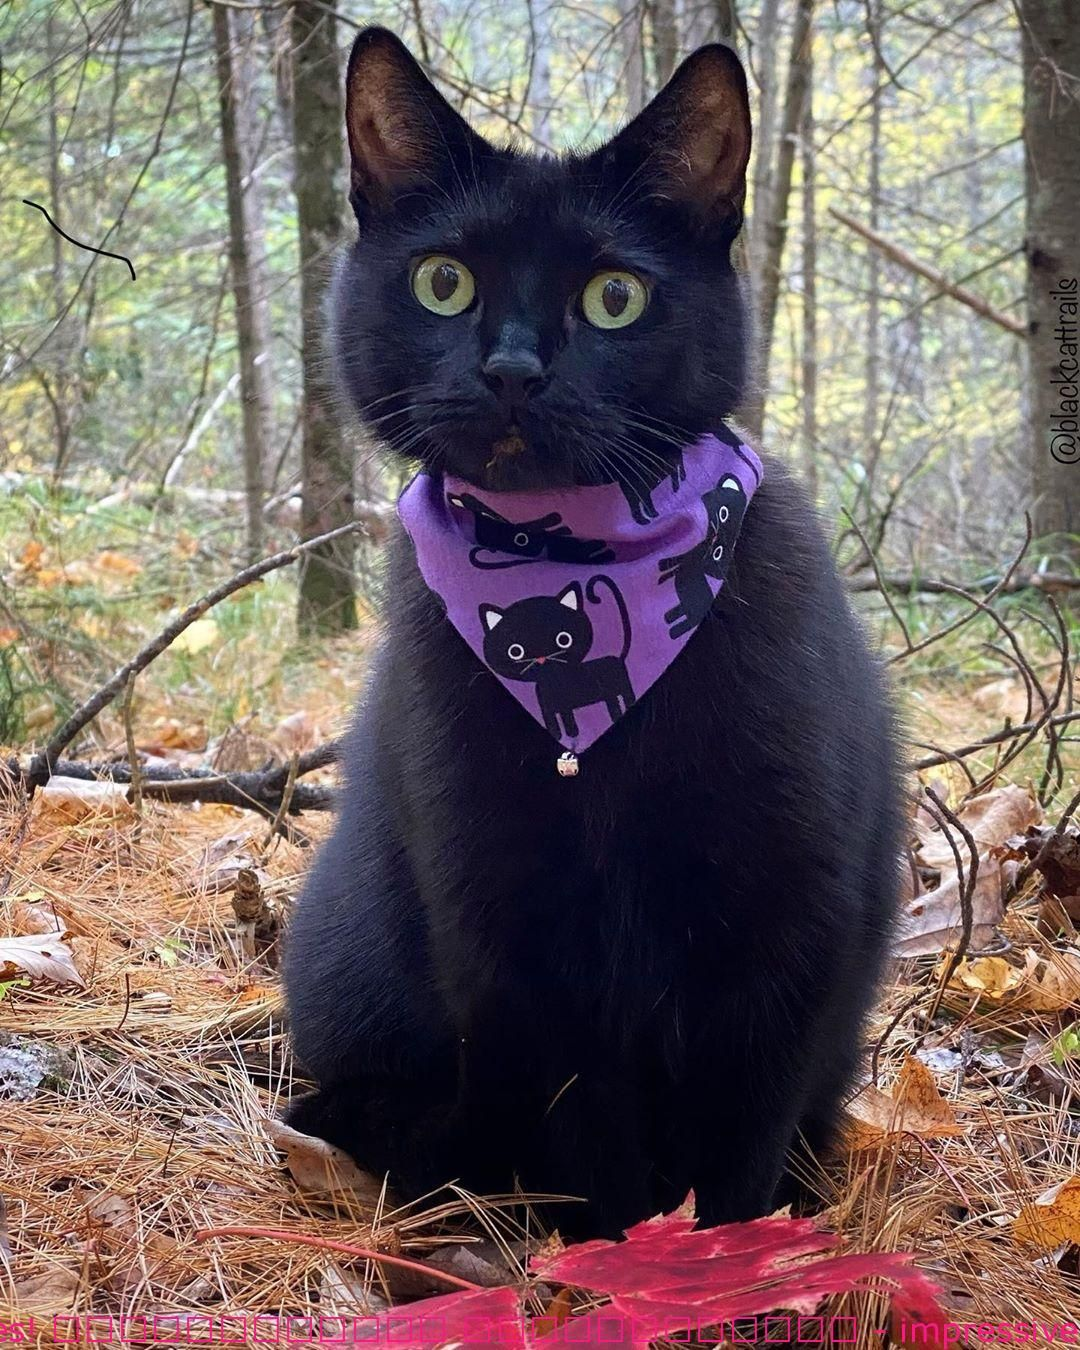 Satisfied Monday from Ledges! - impressive - FunnyCat -   19 diy Halloween Costumes cat ideas